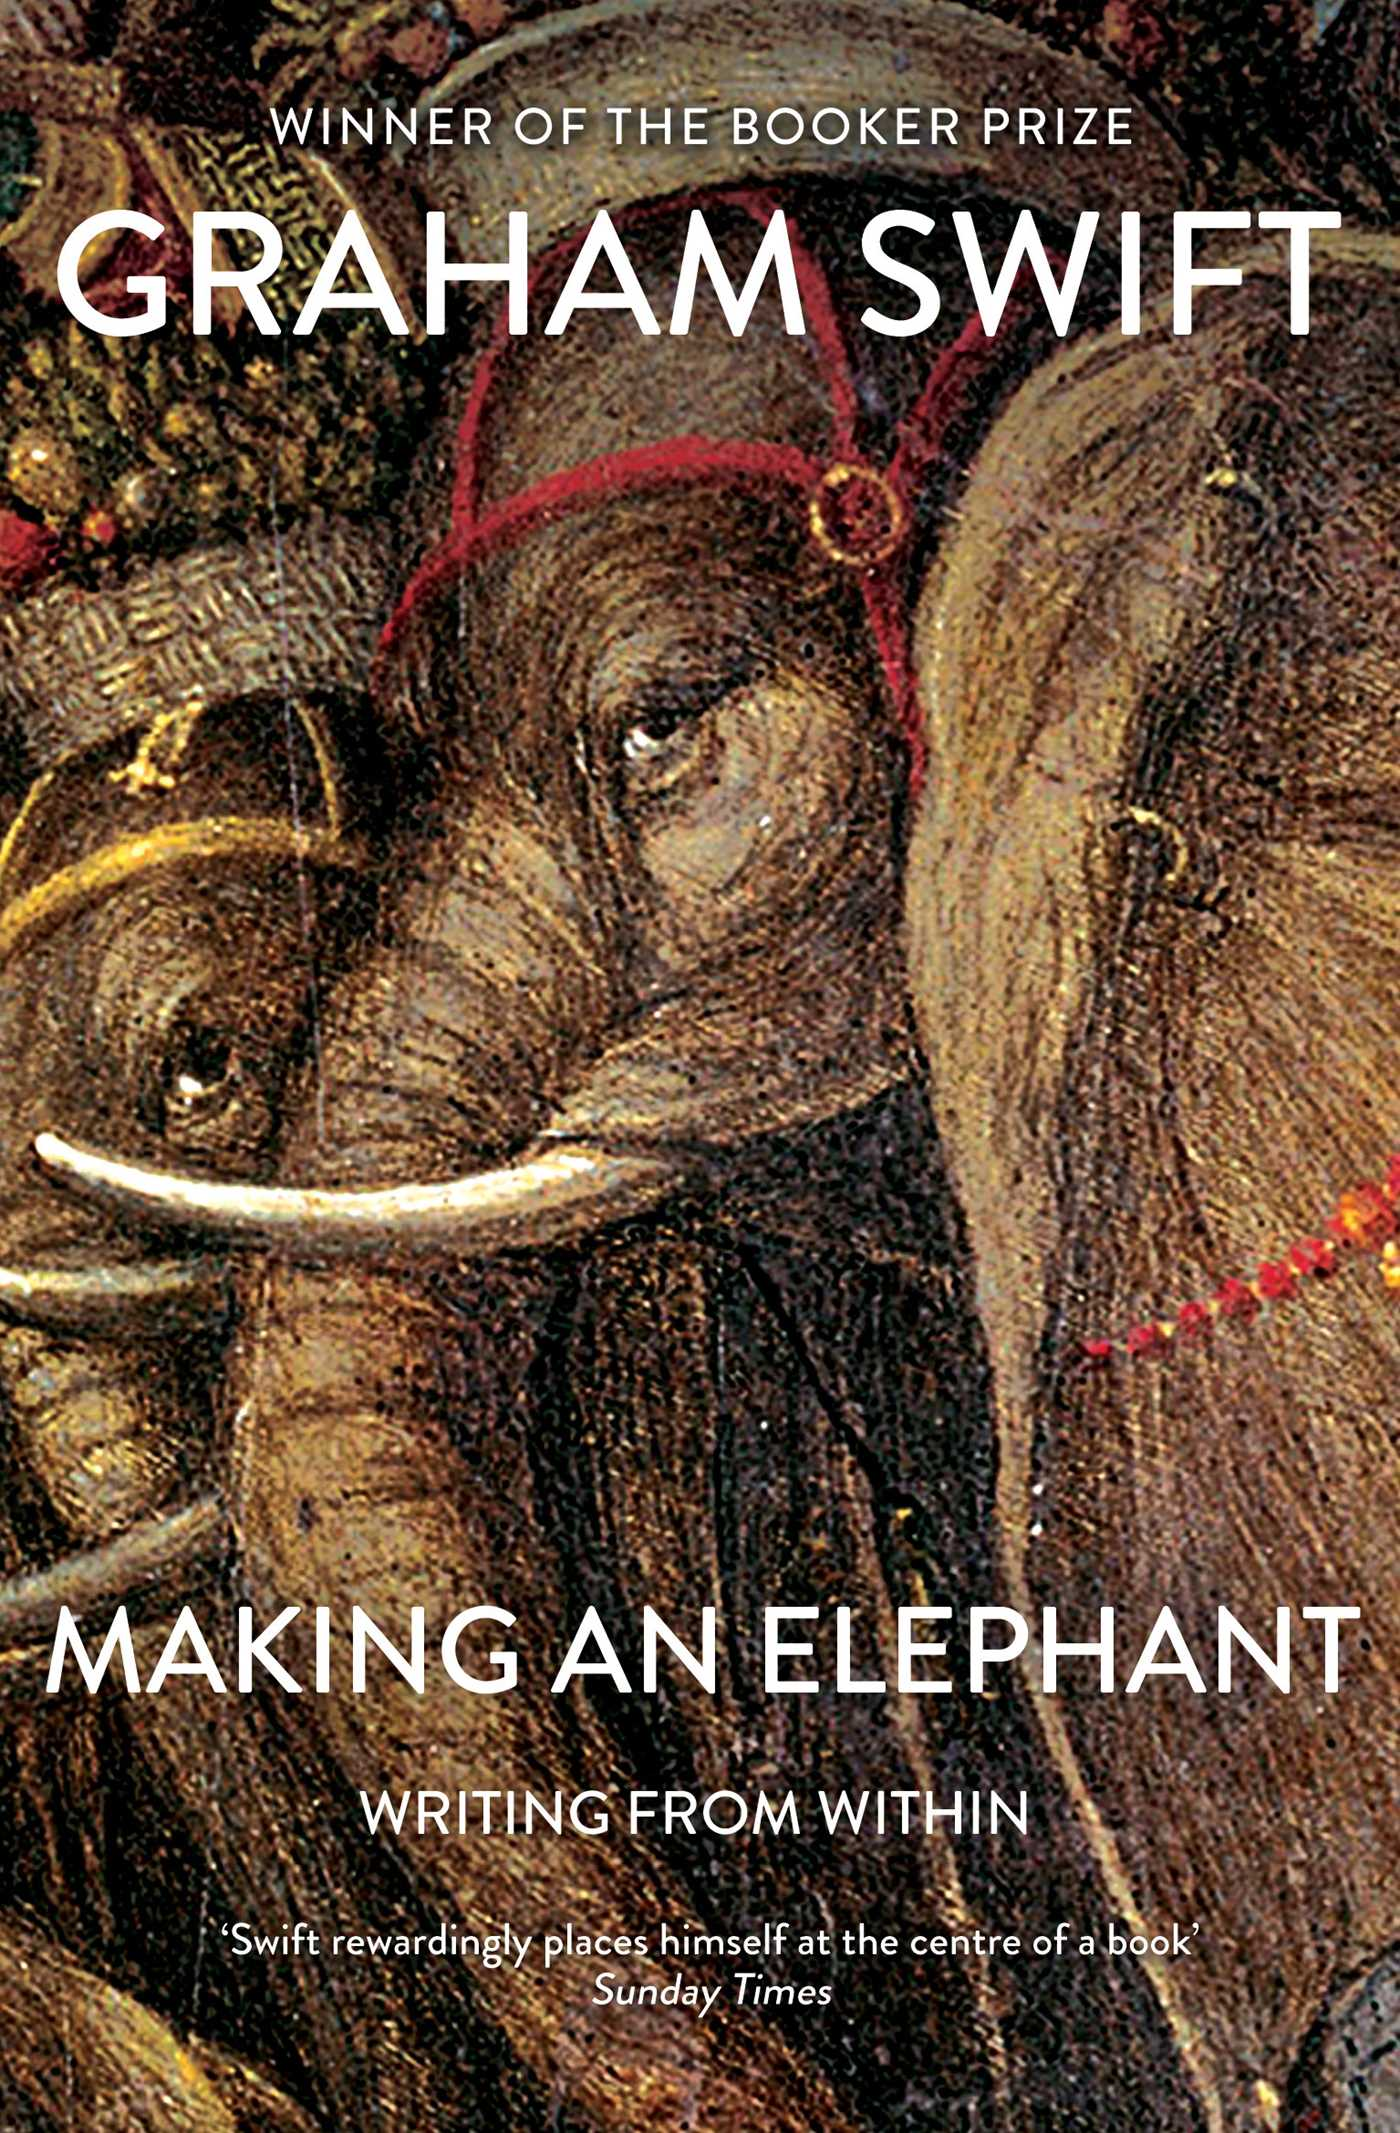 Making an elephant 9781471161957 hr